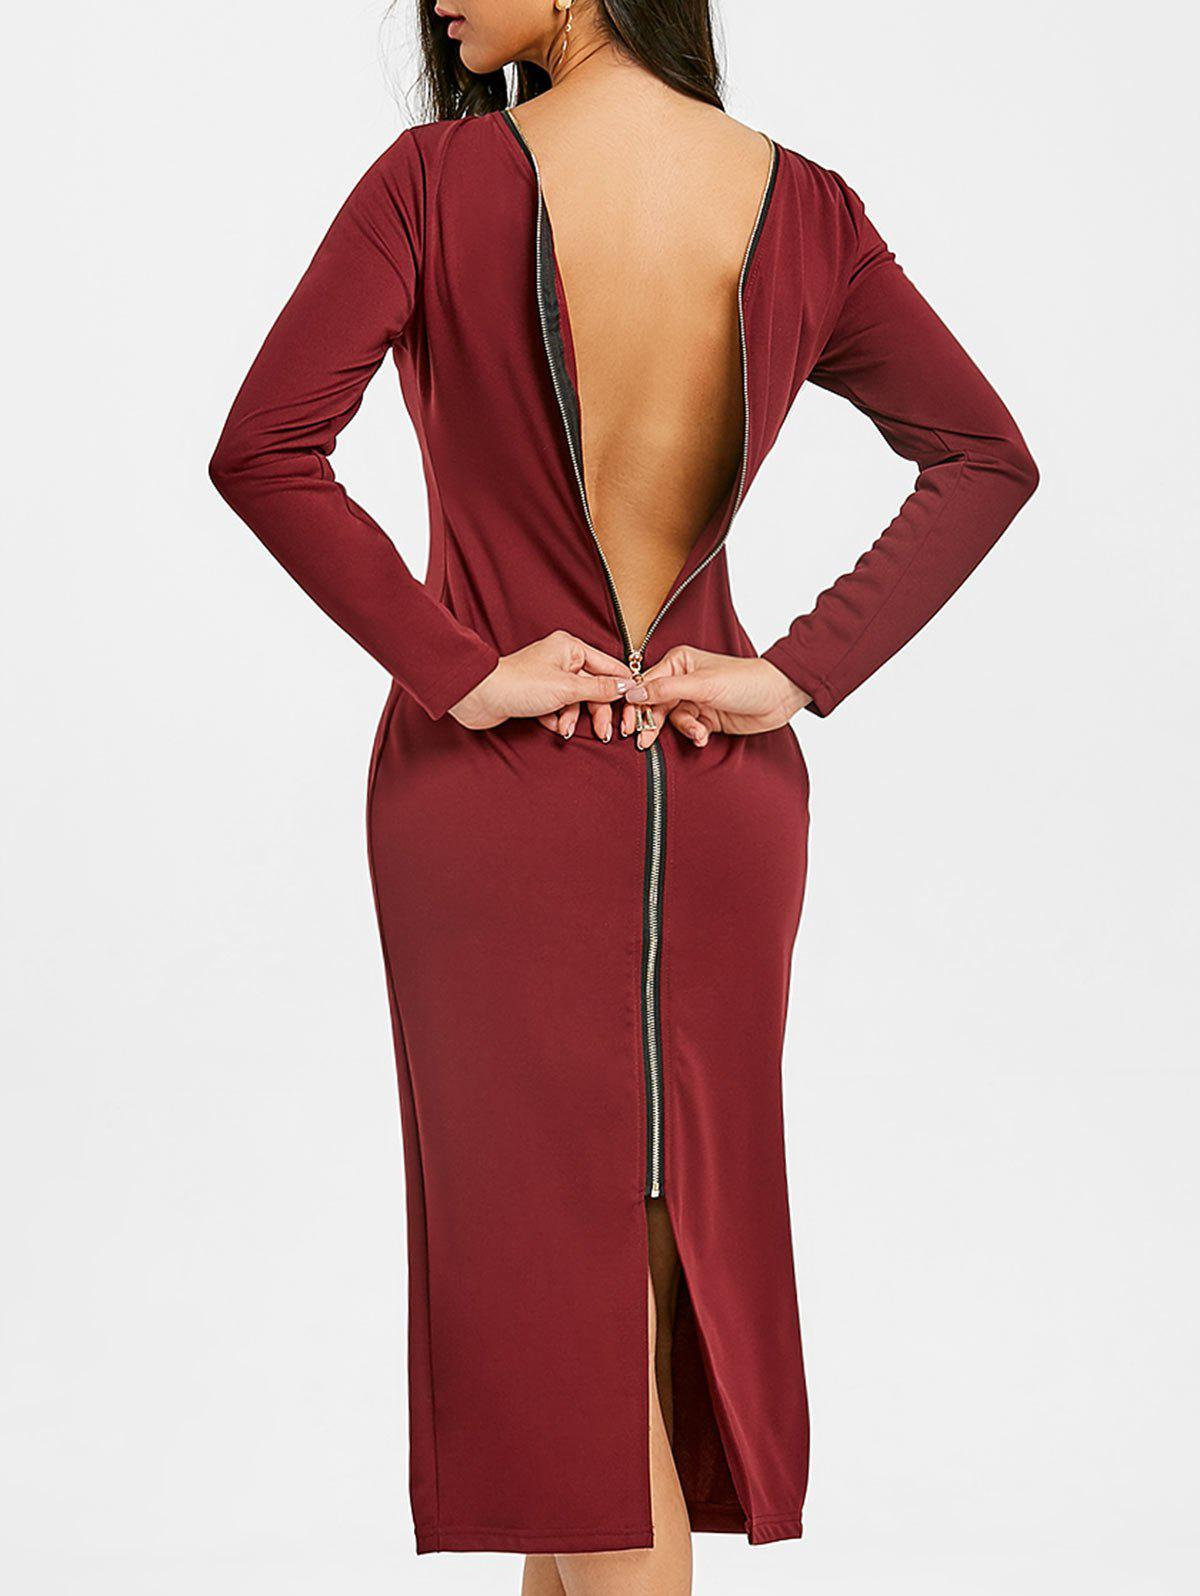 Fancy Long Sleeve Back Zip Up Bodycon Dress